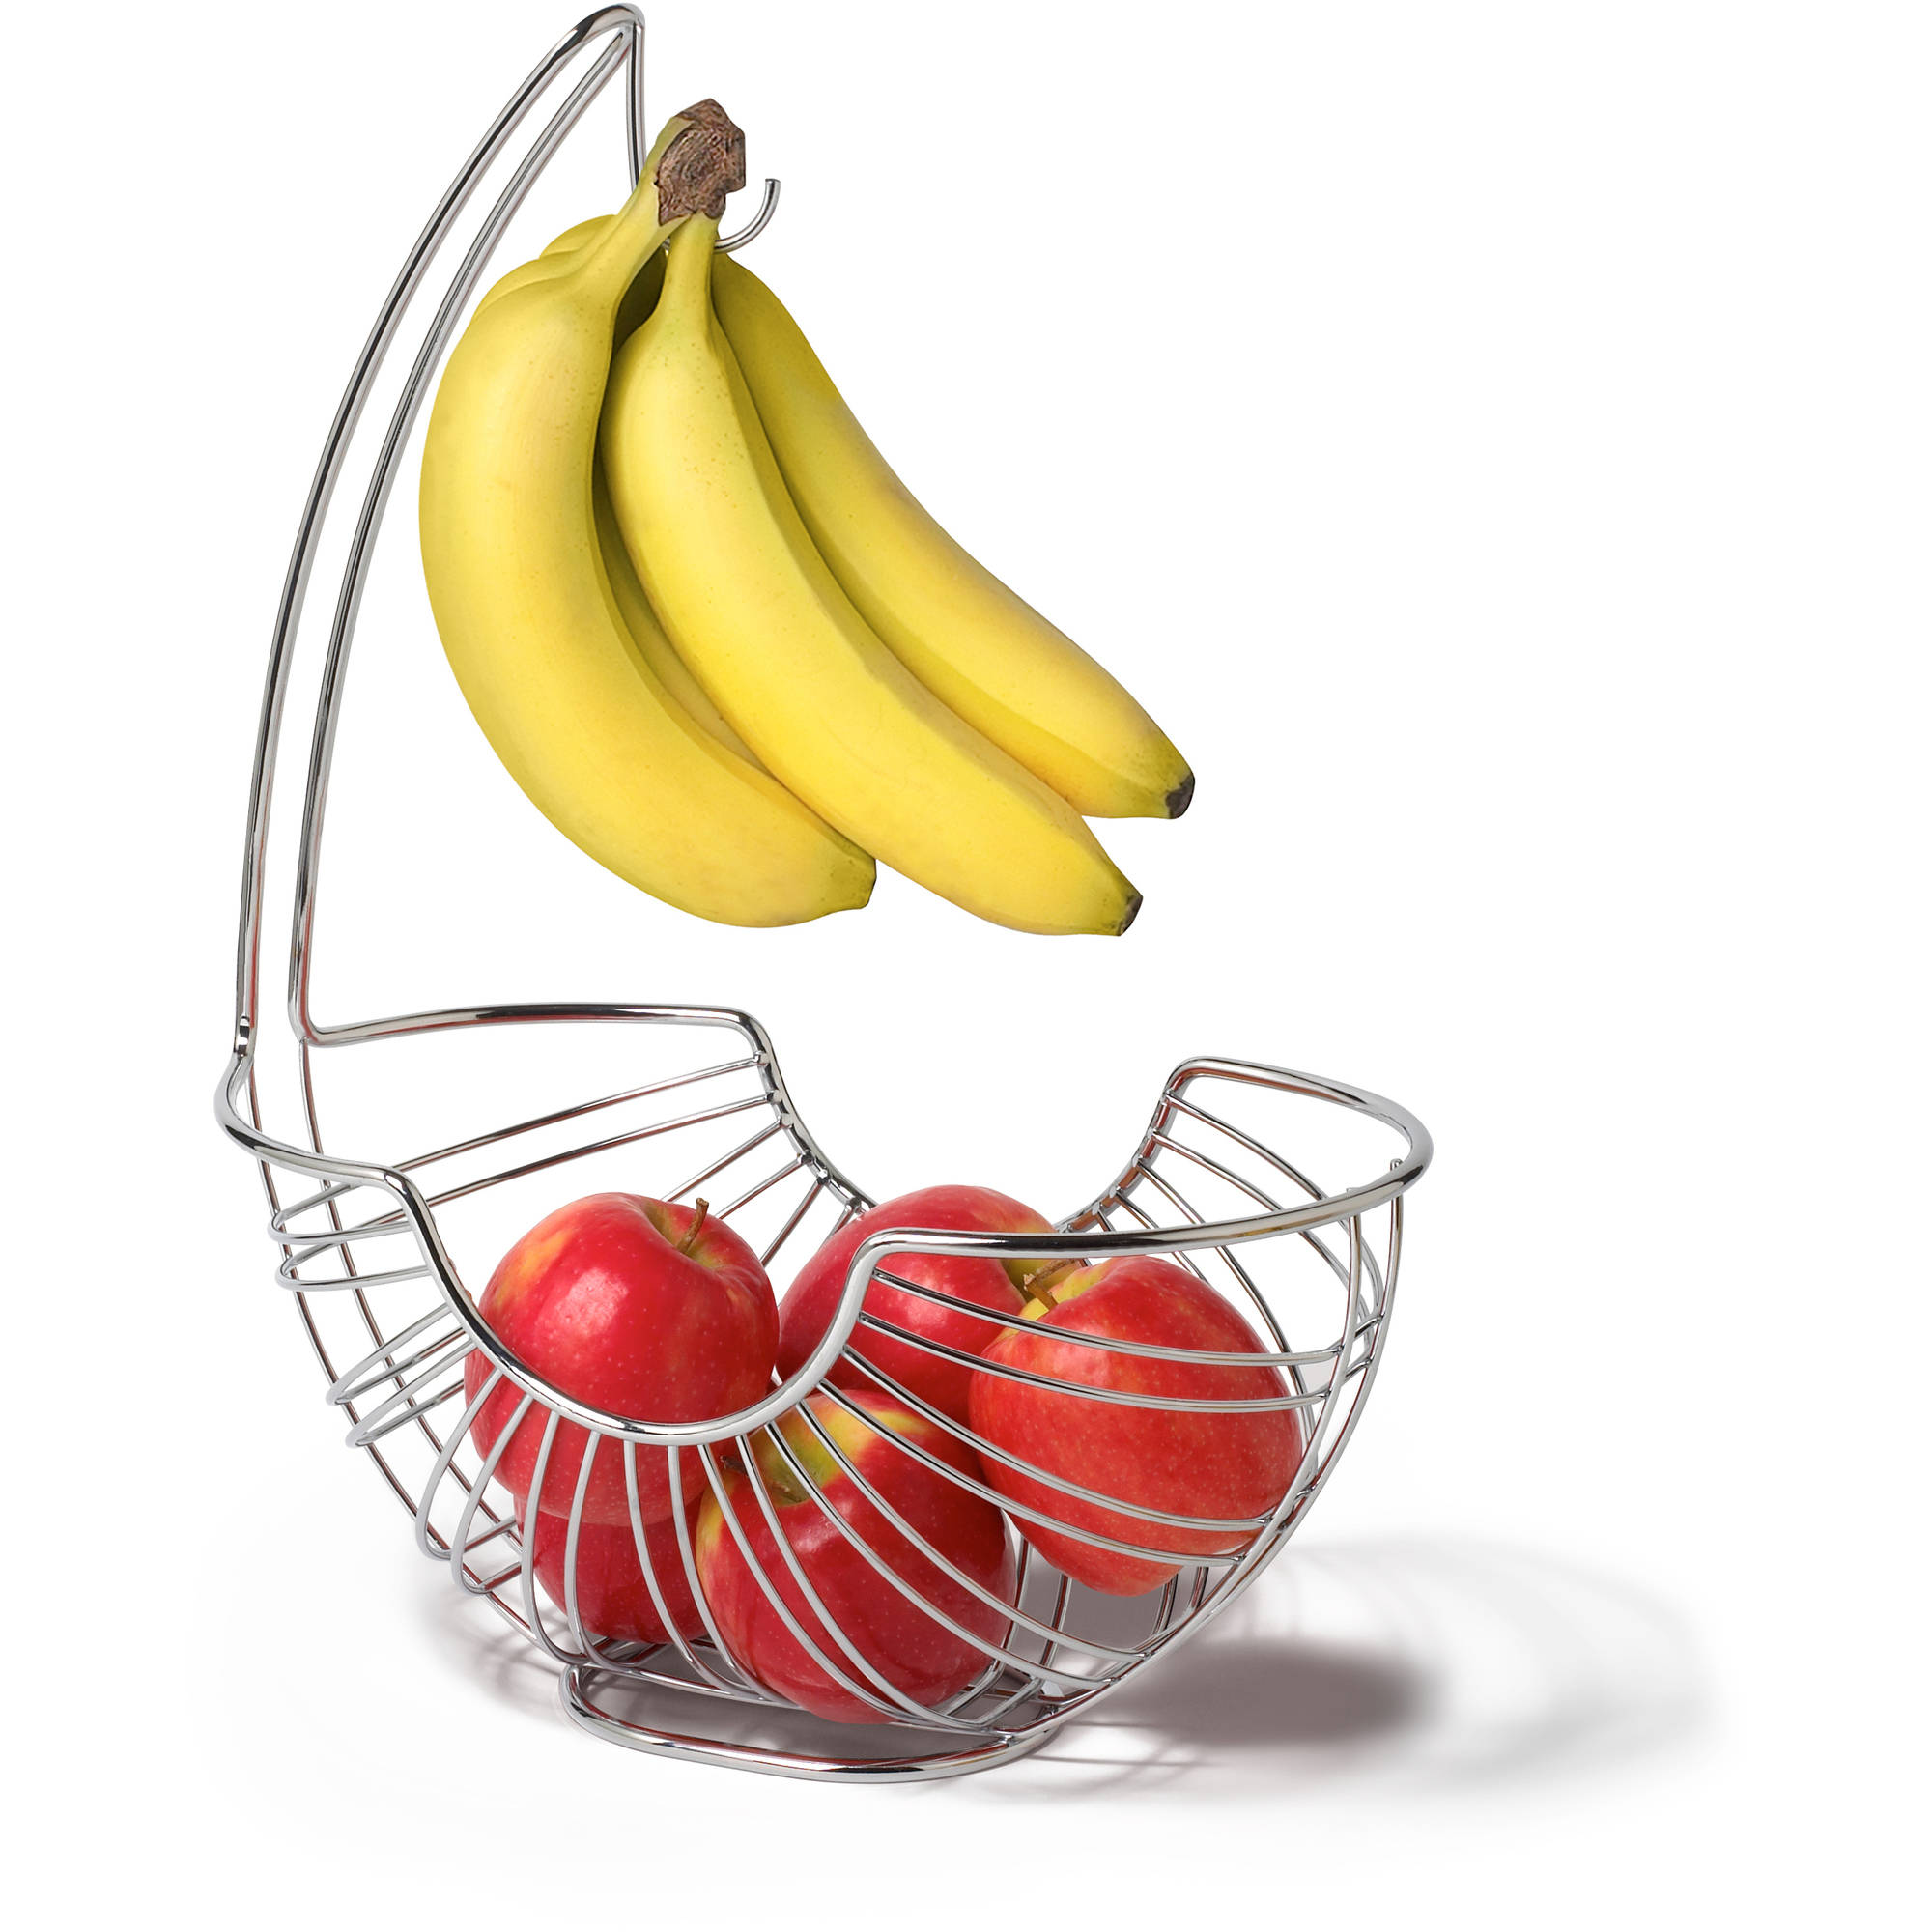 Spectrum Pantry Works Ellipse Fruit Tree Basket and Banana Holder, Chrome